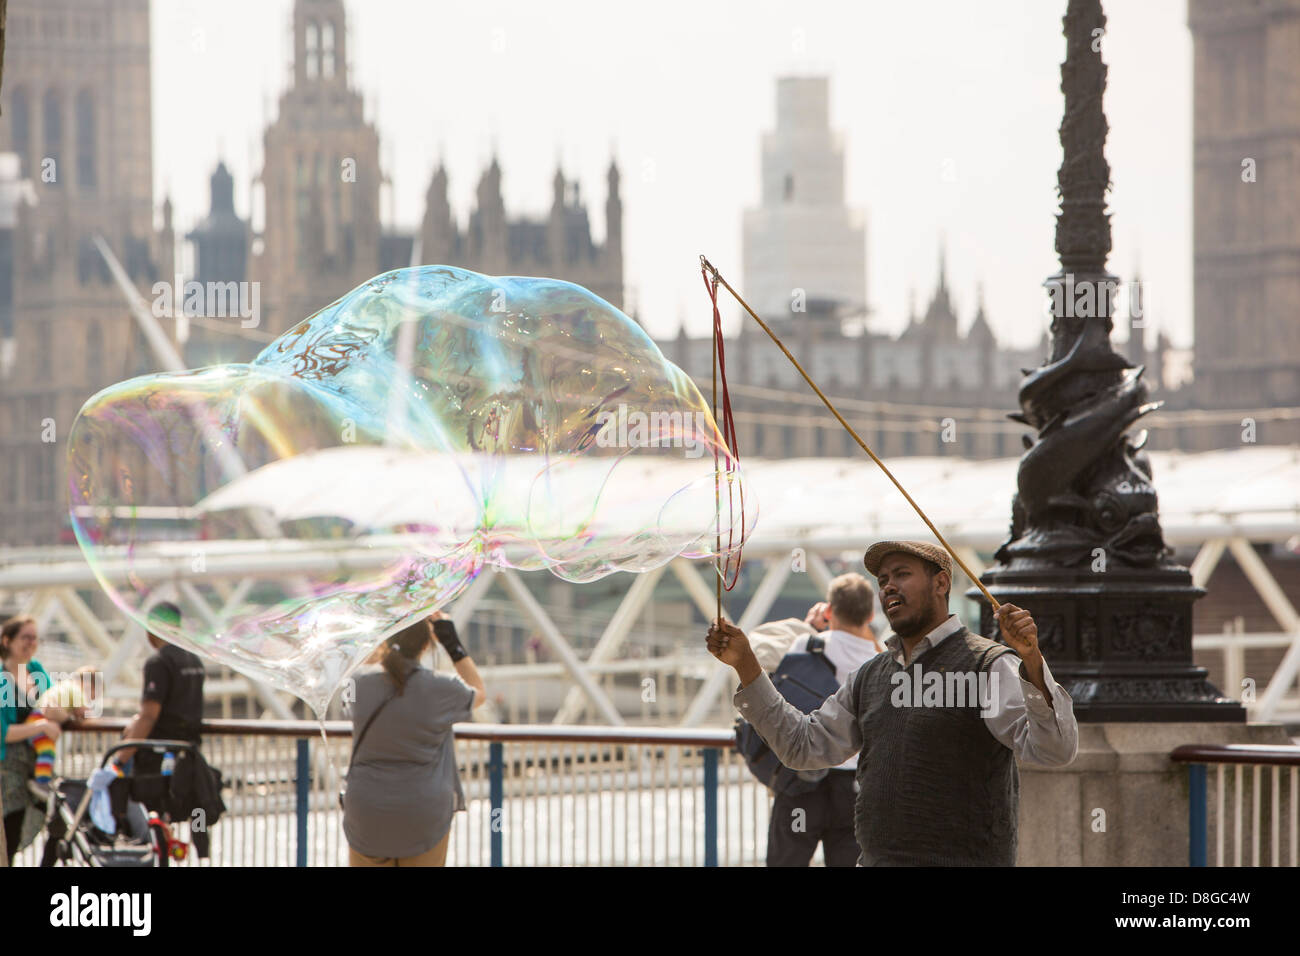 Children chasing bubbles made by a street entertainer on London's South Bank. - Stock Image